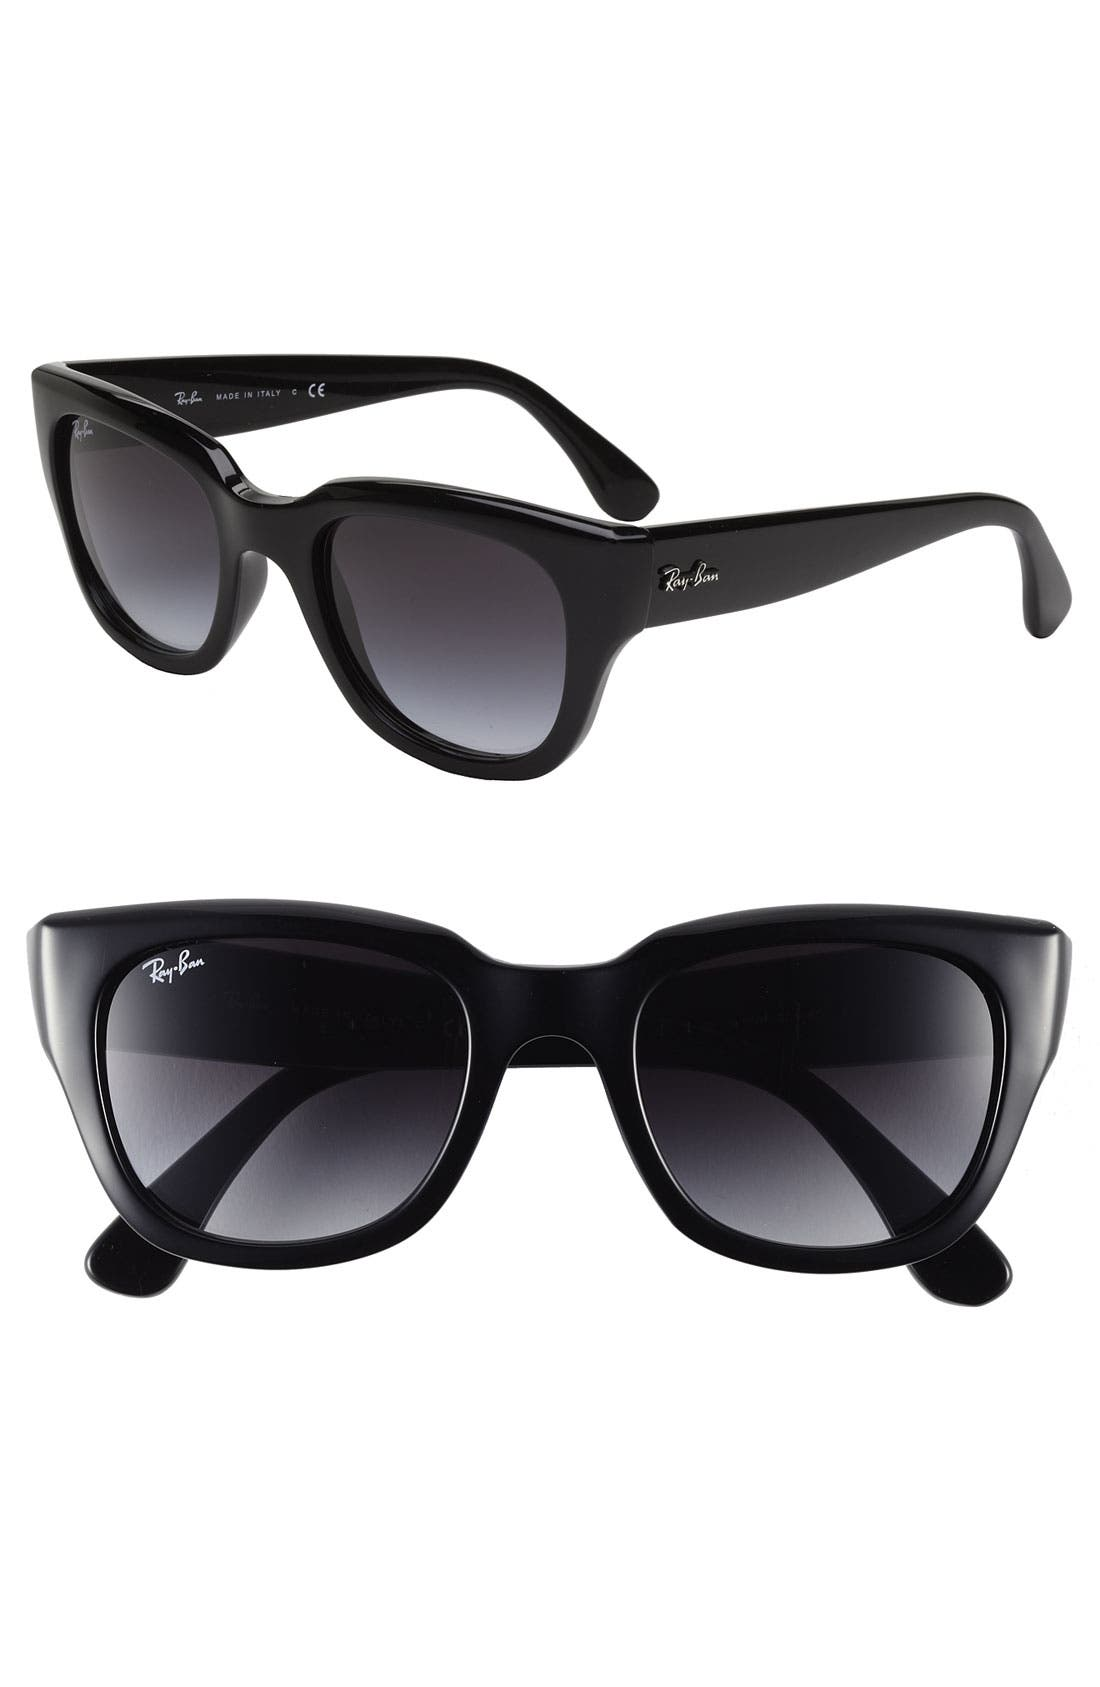 Main Image - Ray-Ban 52mm Retro Sunglasses